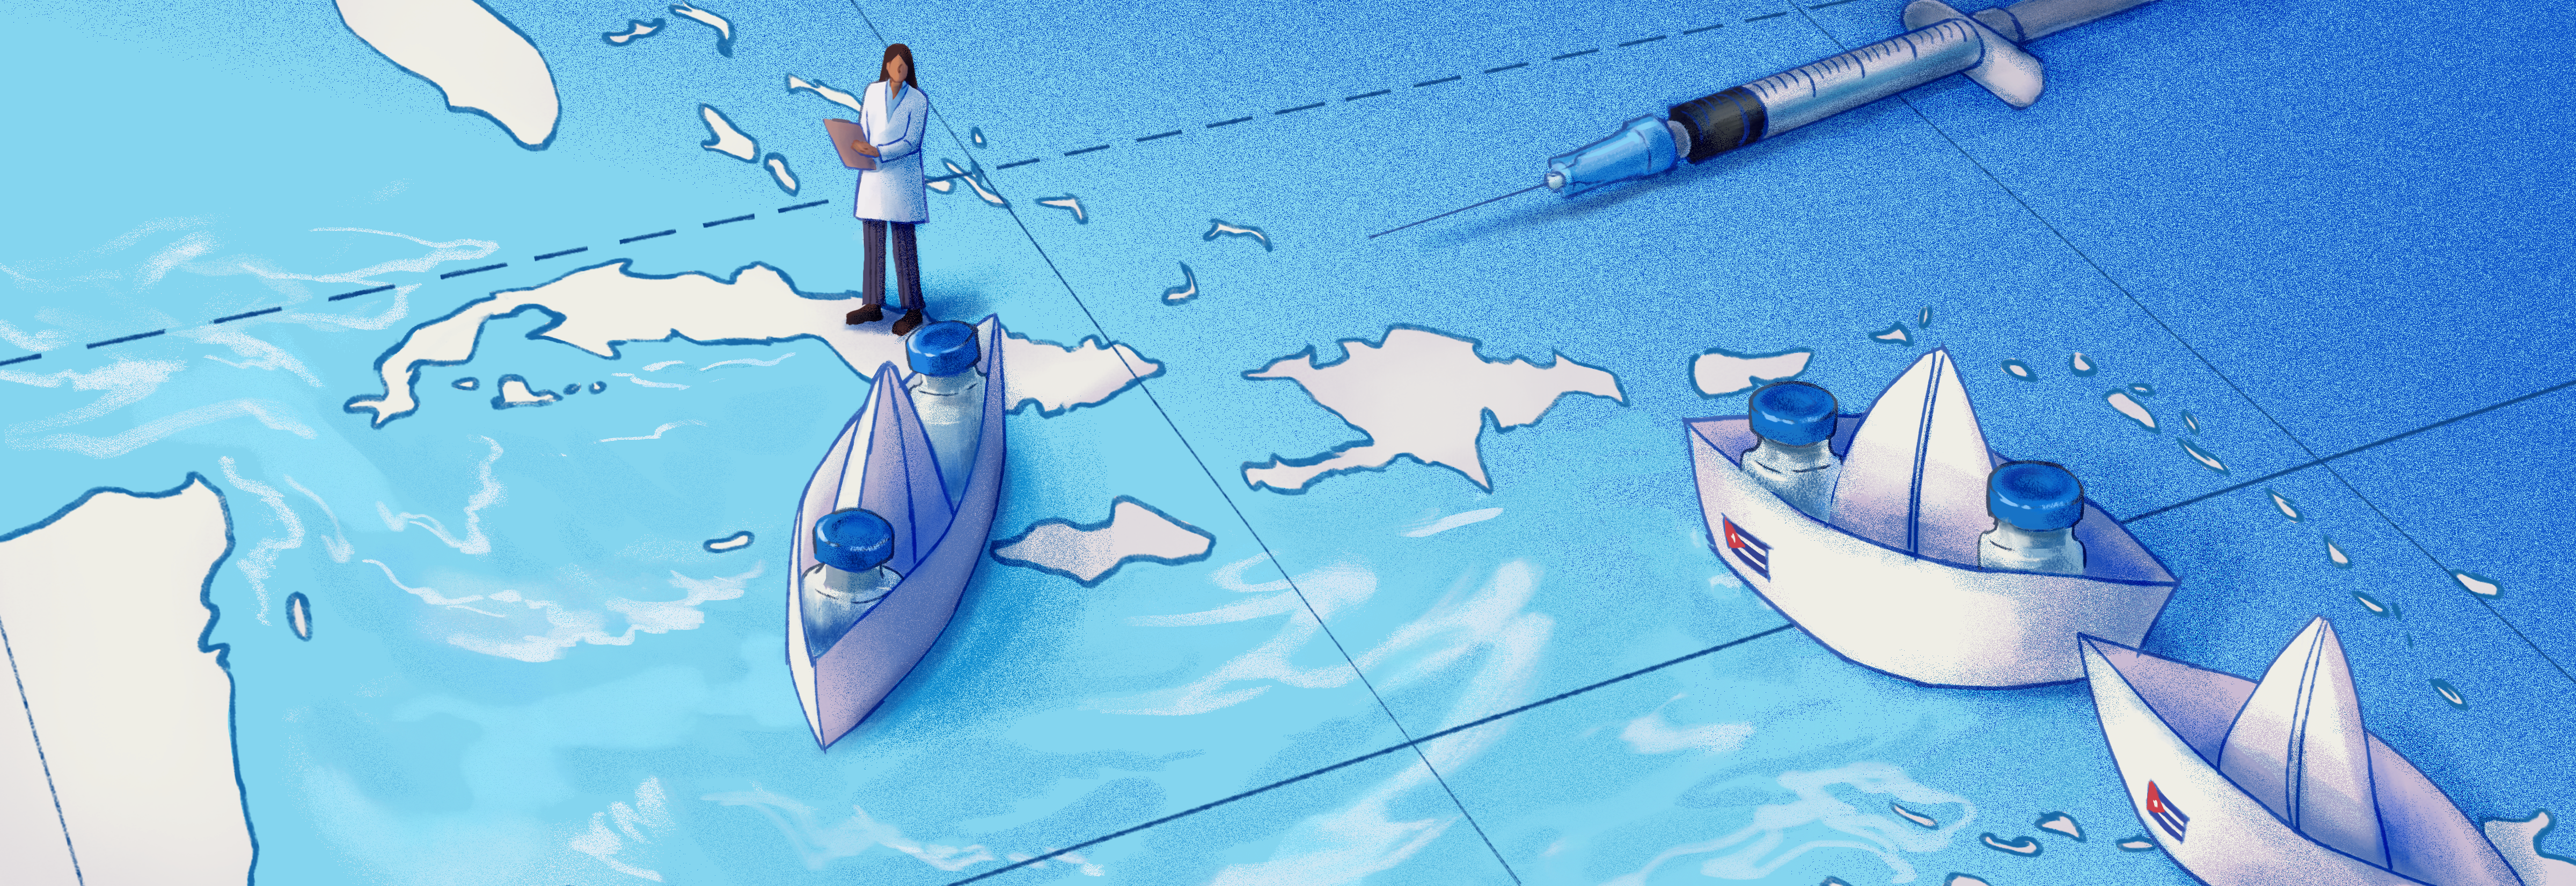 A digital illustration of a world map centered on the Caribbean region. A tiny person in a doctor's coat stands on top of Cuba. Three paper boats bearing a tiny Cuban flag depart from Cuba. Two of the paper boats hold two vaccine vials. A syringe needle also lies on top of the map in the corner.